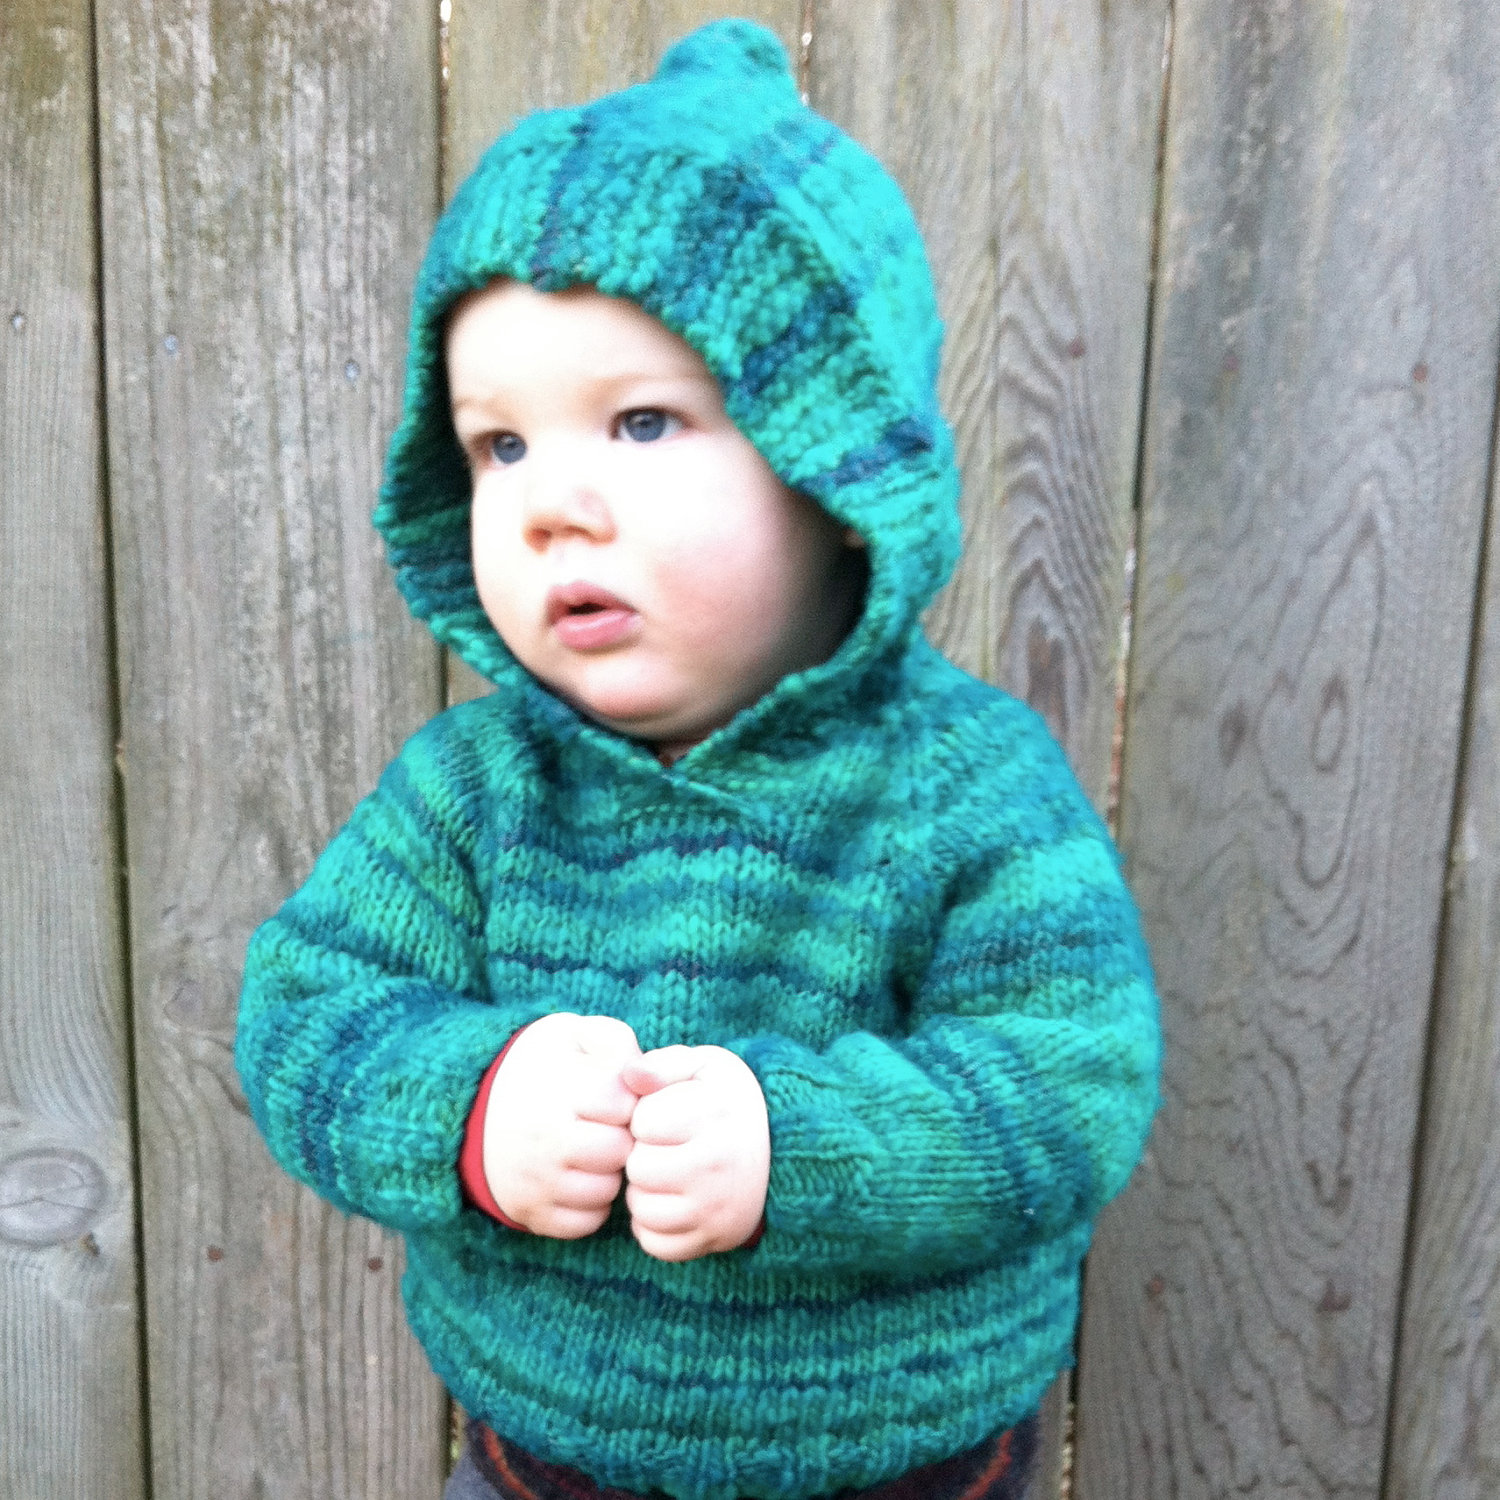 Hooded Knit Sweater Patterns | A Knitting Blog